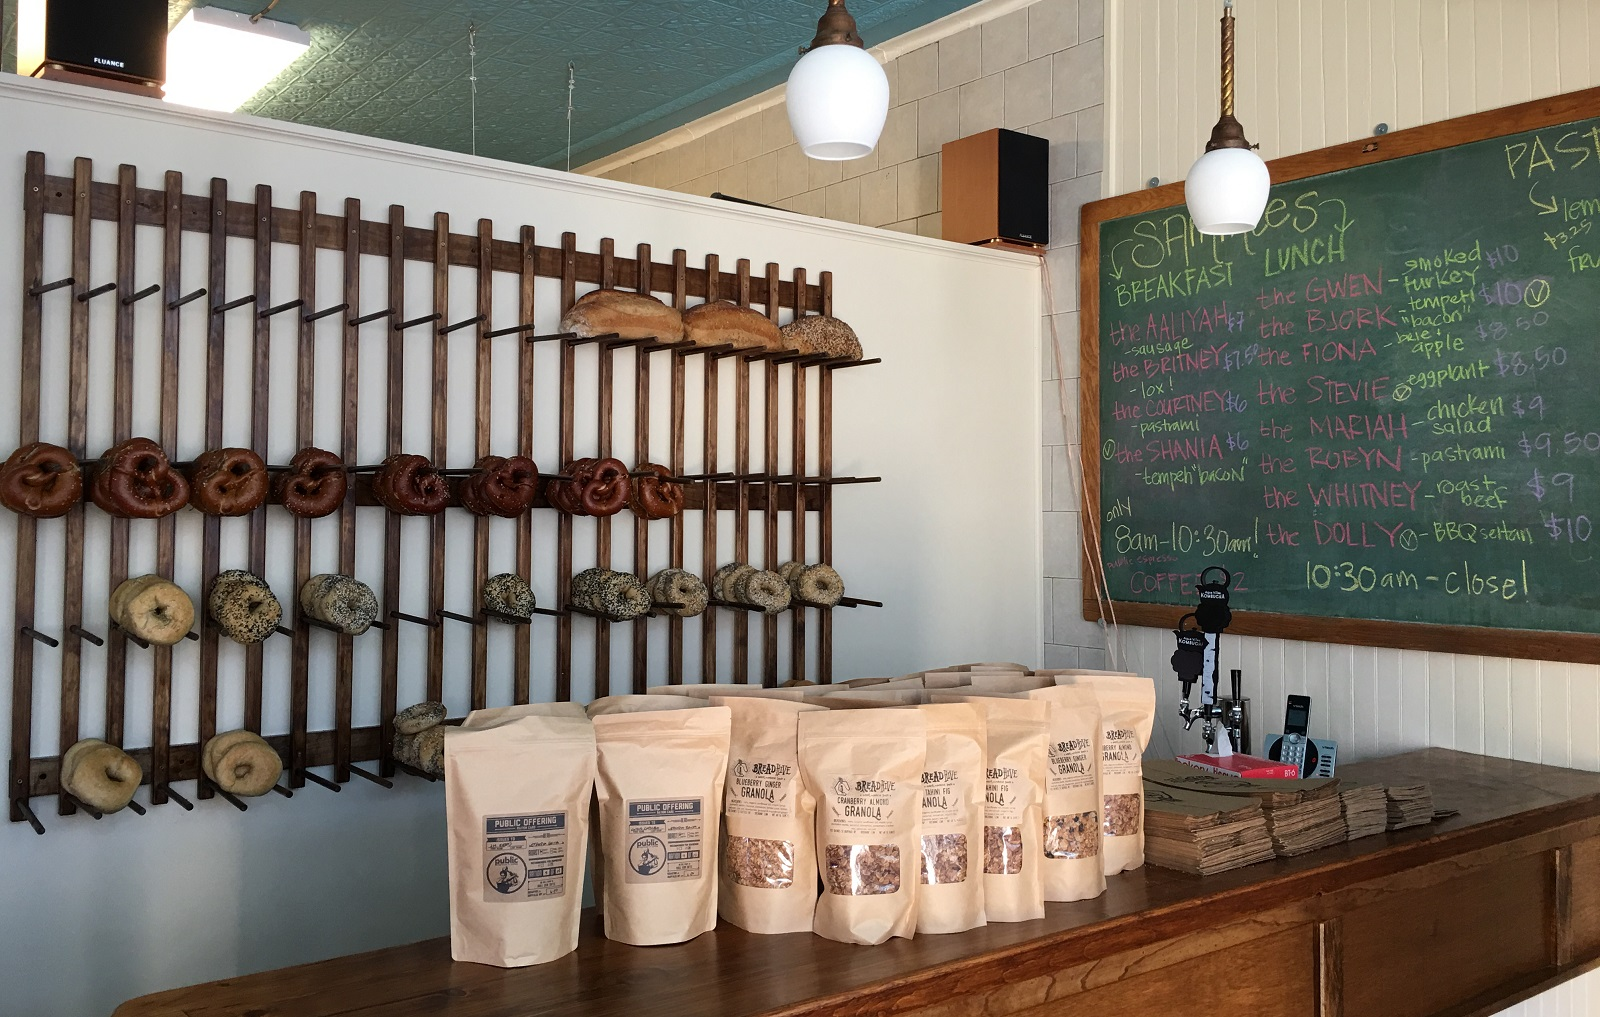 Bags of Public Espresso coffee are on sale at BreadHive, too. (Nick Guy/Special to The News)